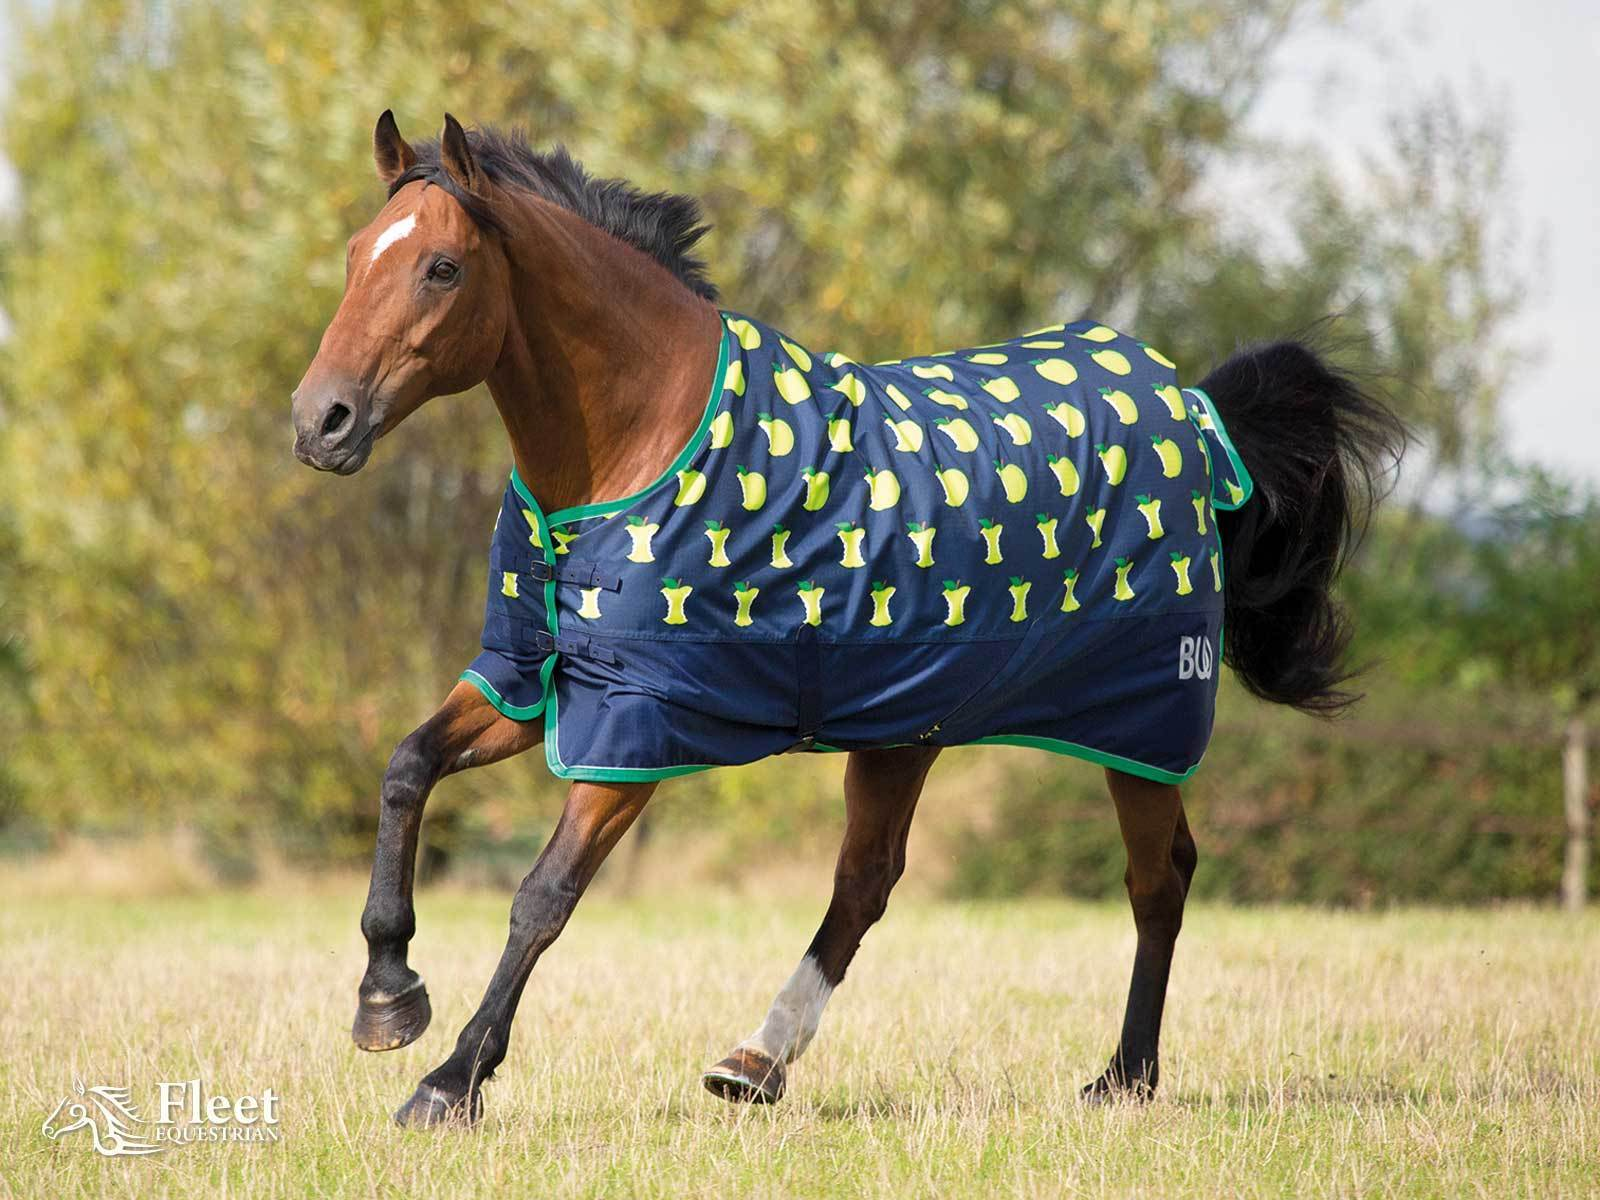 Bridleway Ontario Lightweight Turnout Rug Green Le Print